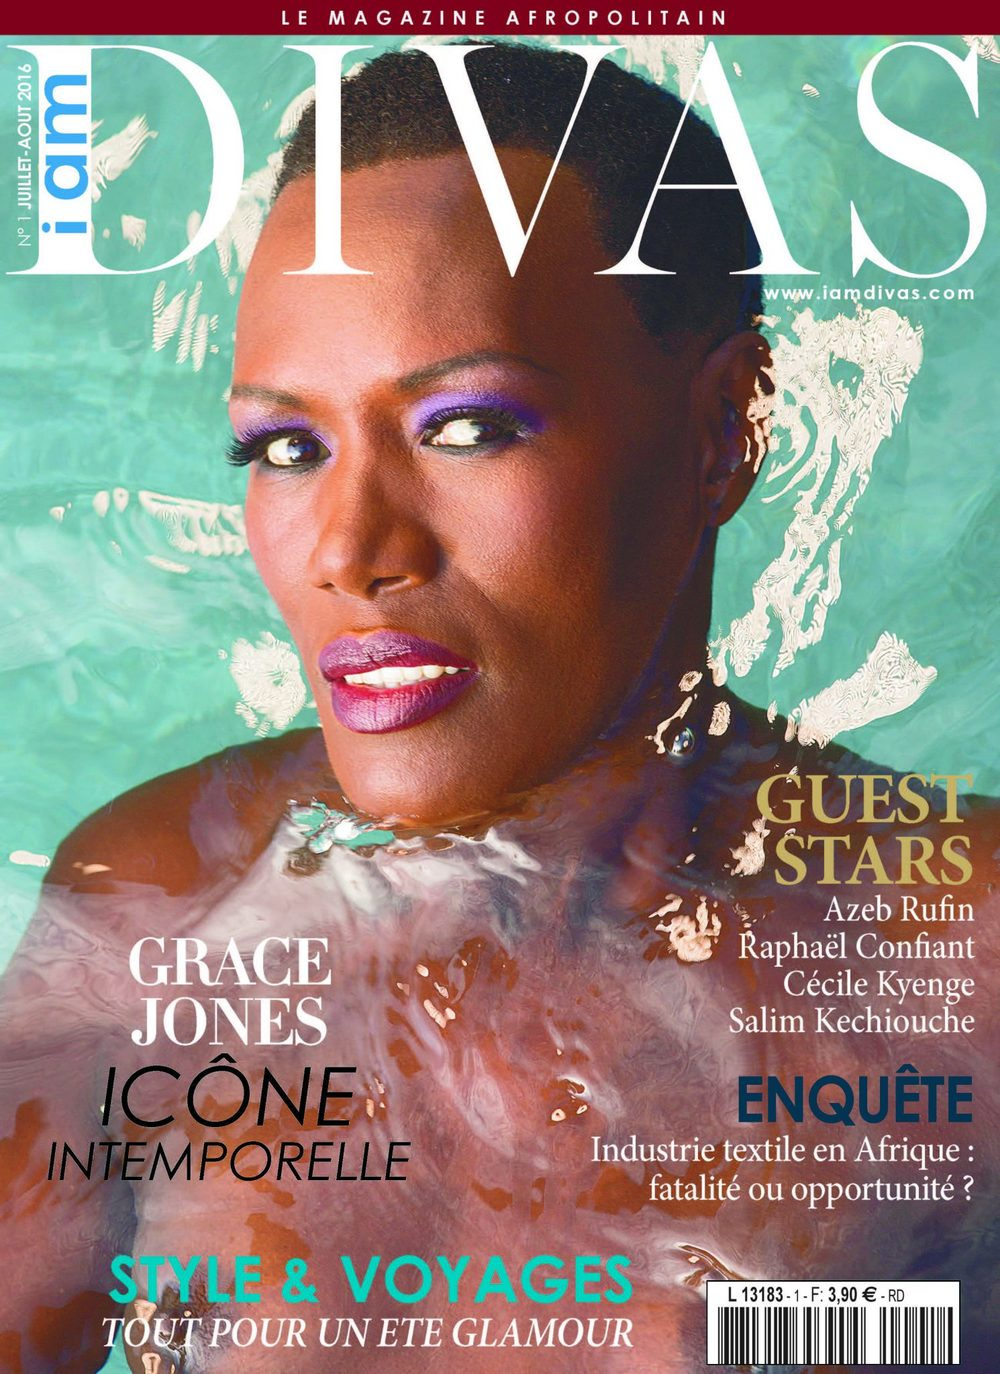 IAMDIVAS WEB & PRINT - JULY 2016